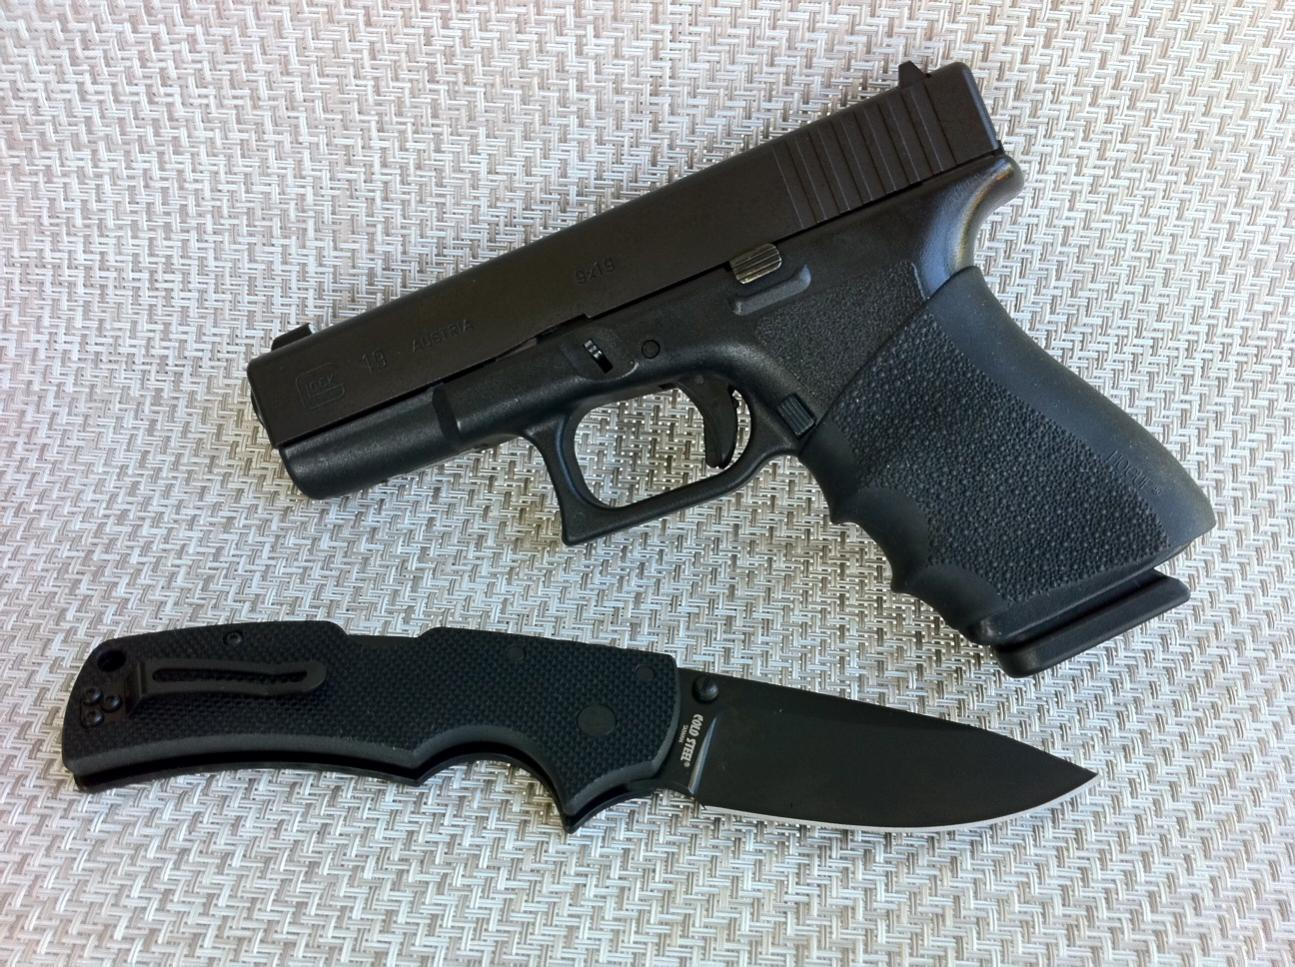 If you're a Glock fan you might like this...(pics included)-photo.jpg